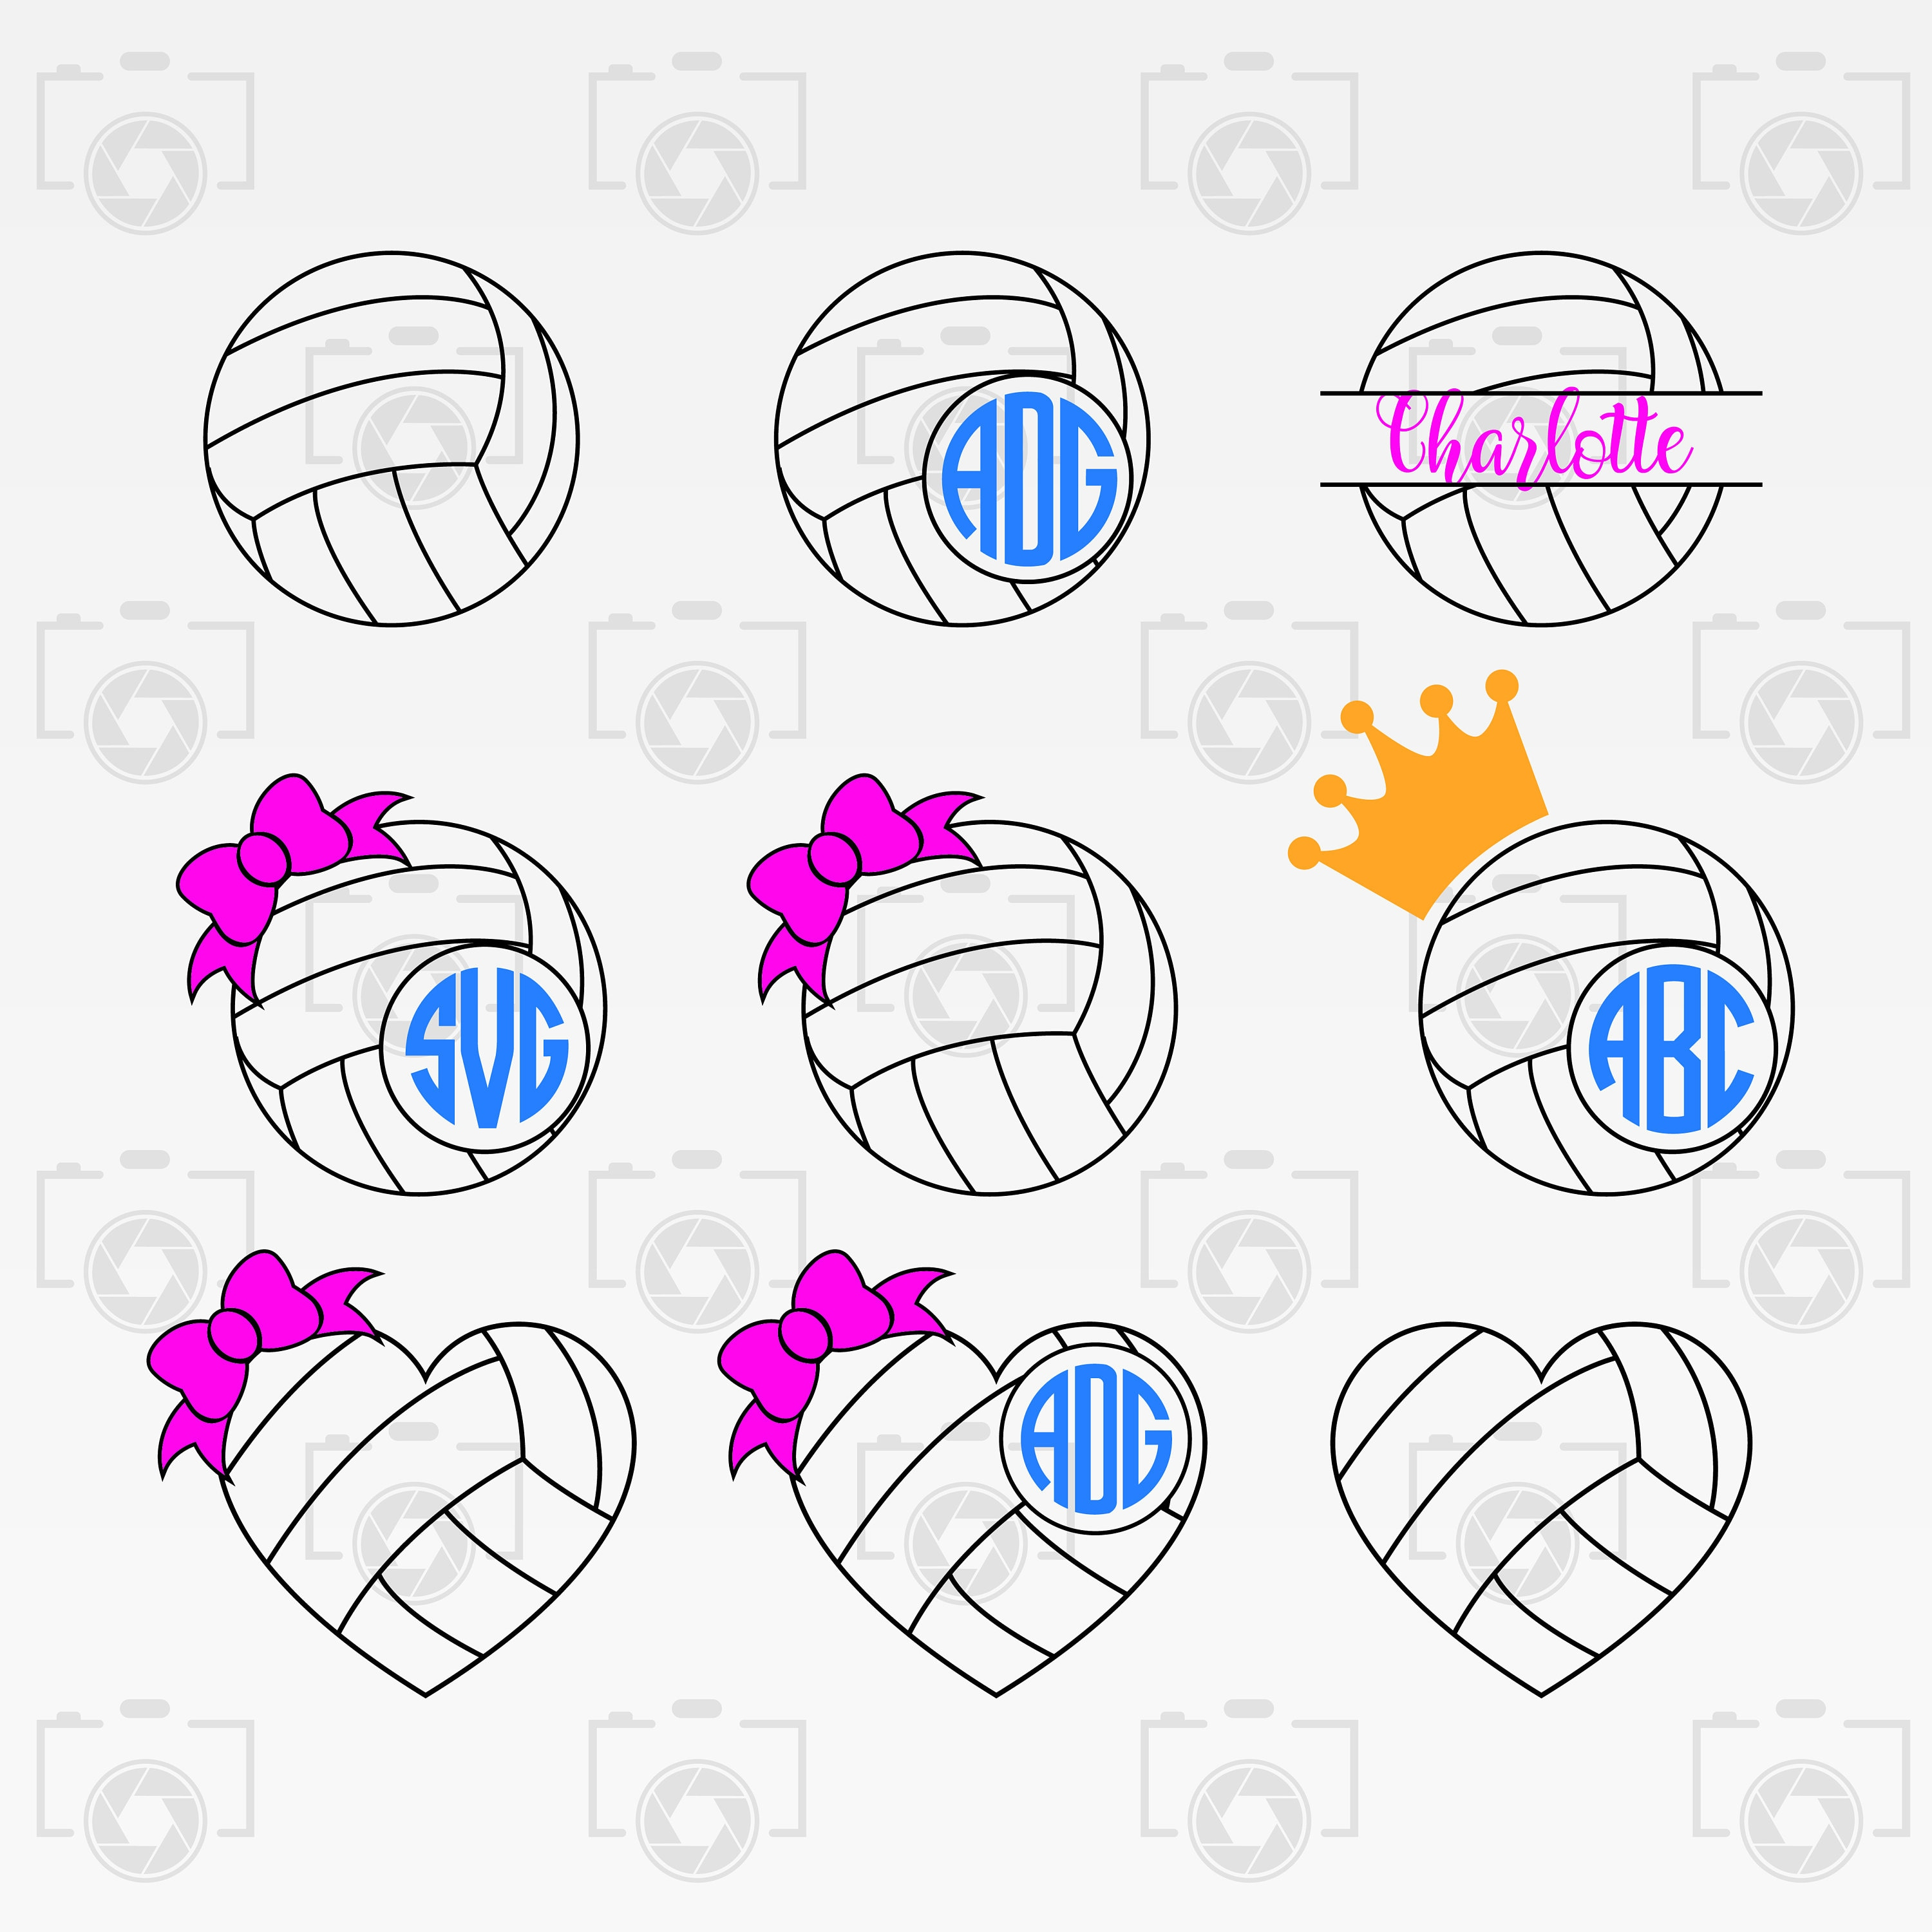 Instant Files Download Svg Cut Files Print Or More Dxf Volleyball Numbers Digital Clipart For Design Png Volleyball Numbers Svg Craft Supplies Tools Paper Party Kids